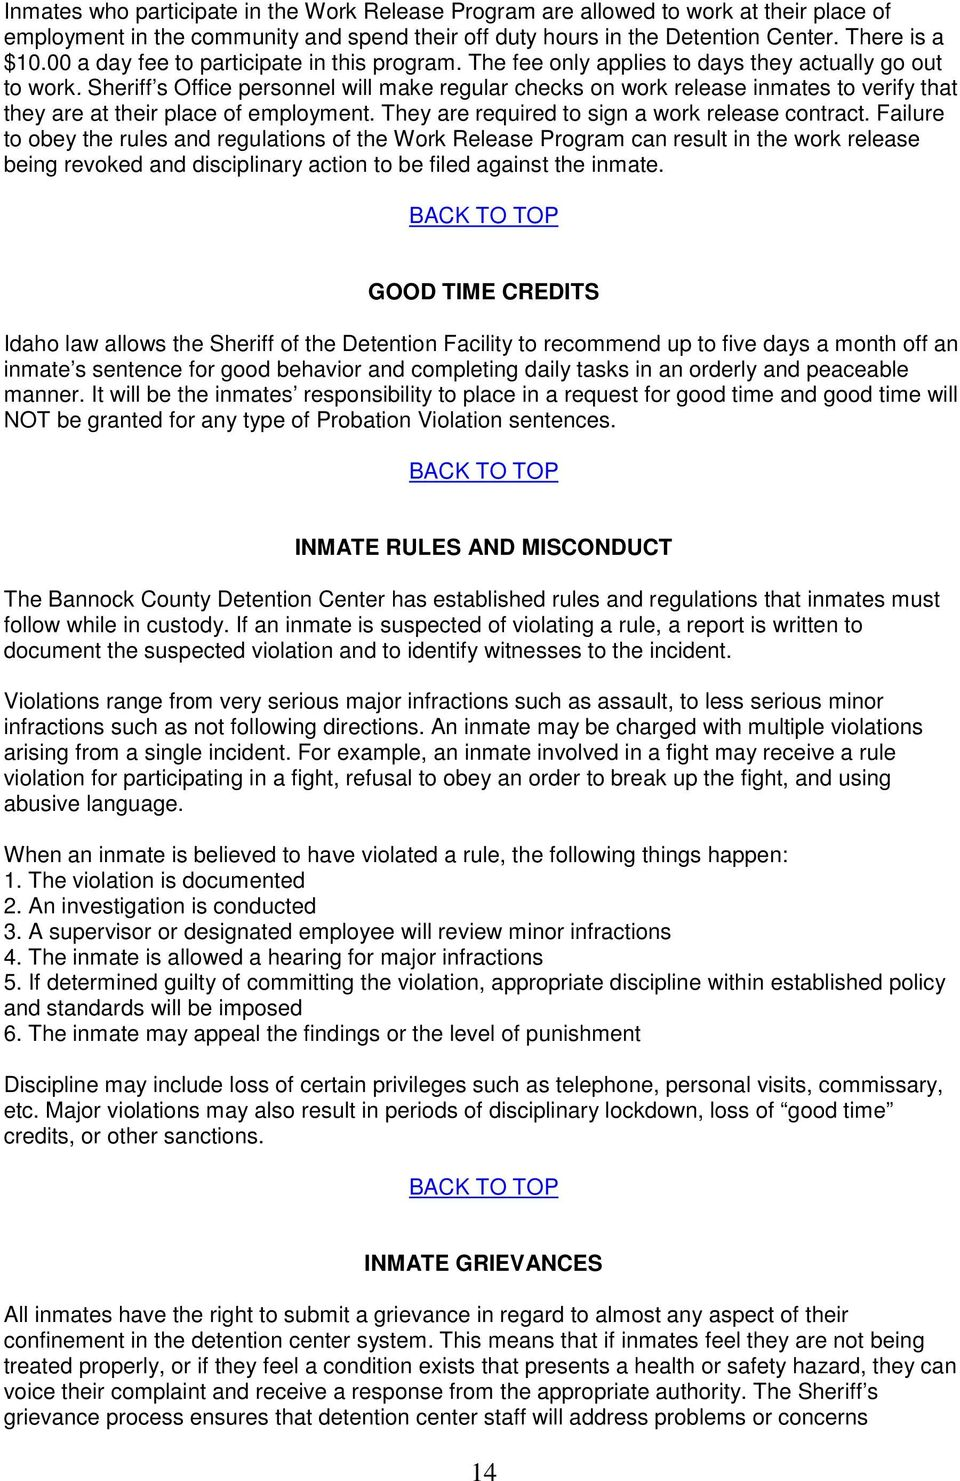 BANNOCK COUNTY DETENTION CENTER ORIENTATION HANDBOOK A